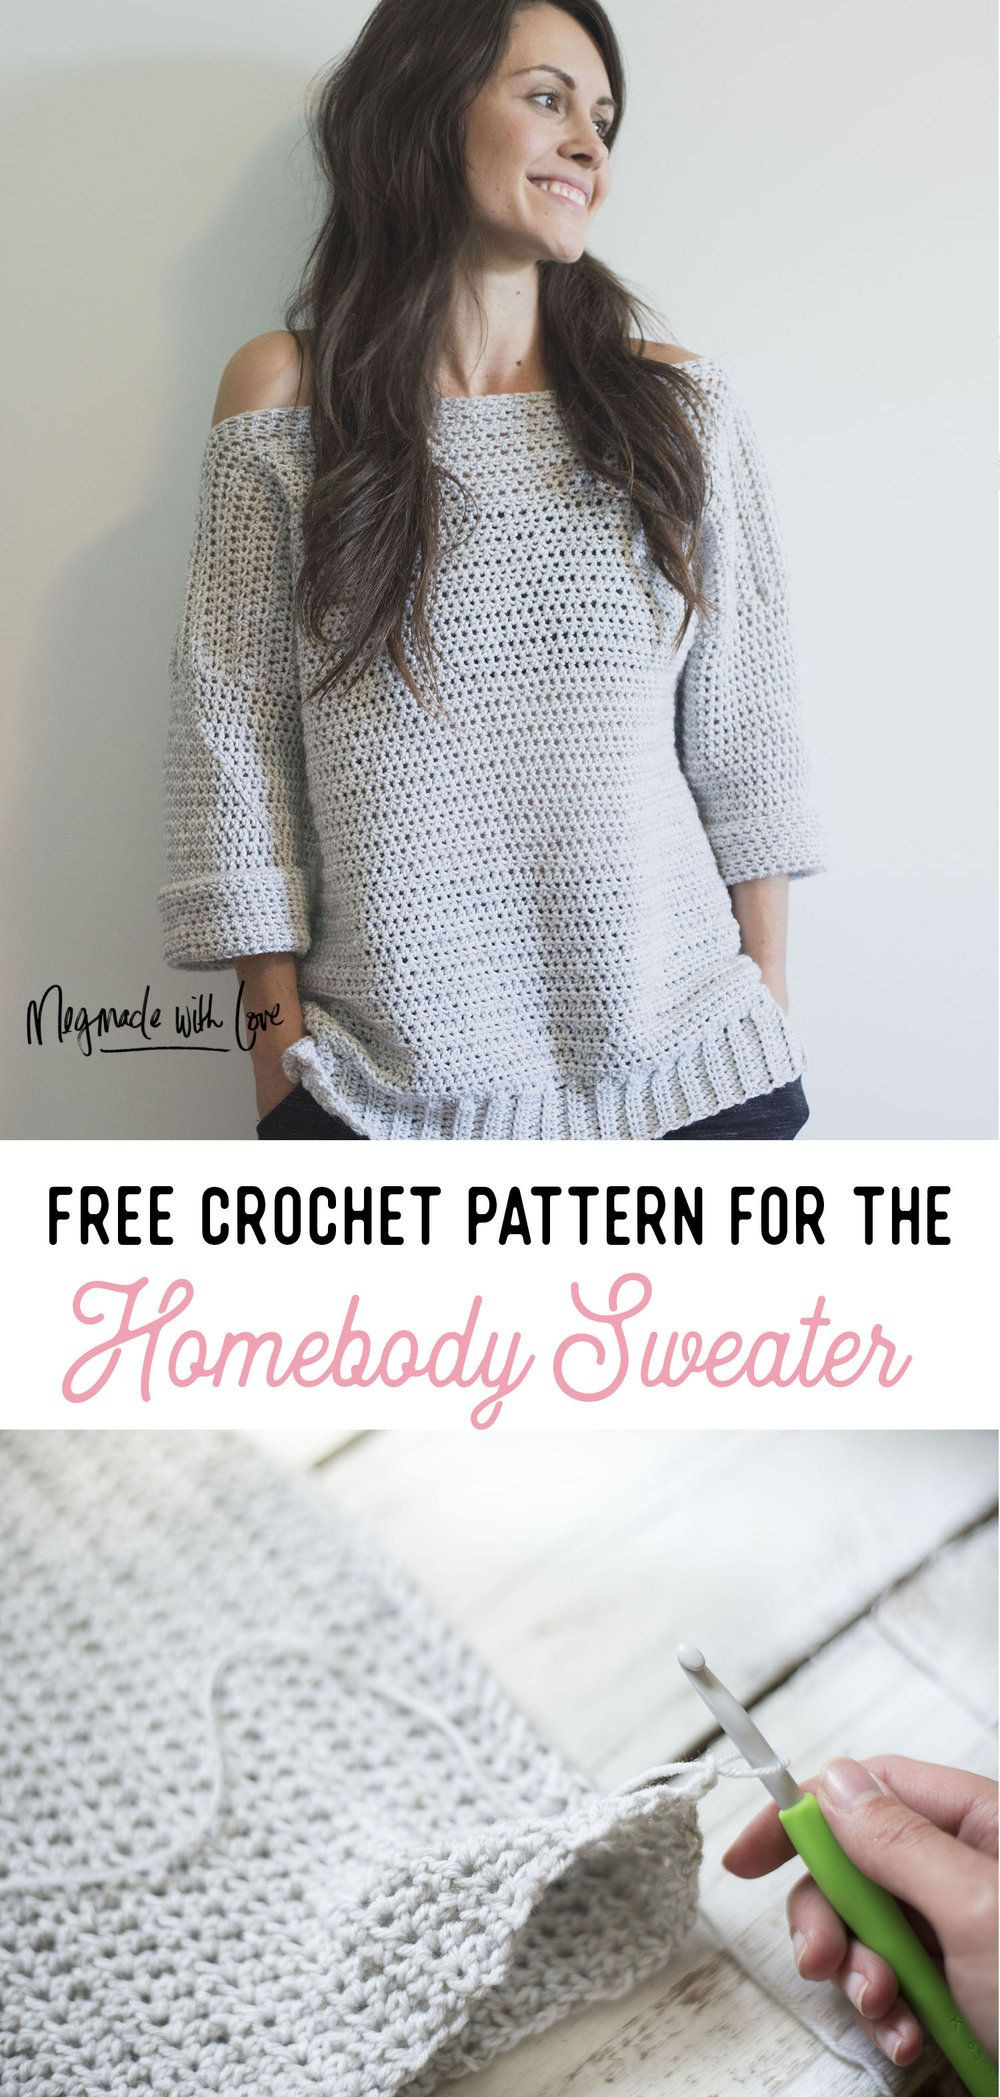 da1cabc3284a Free Crochet Pattern for The Homebody Sweater (Easy